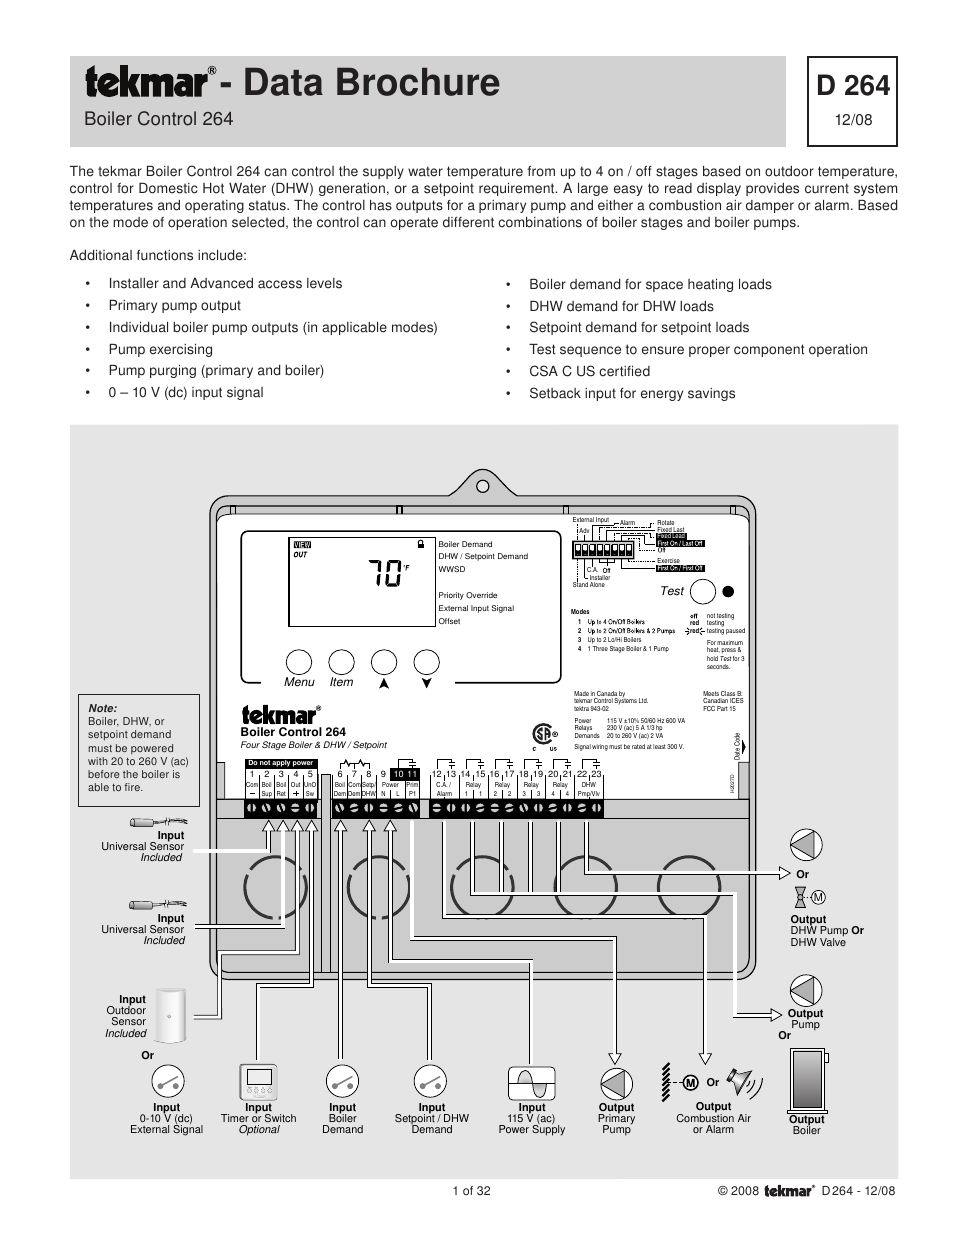 tekmar 264 boiler control page1 tekmar 264 boiler control user manual 32 pages tekmar 260 wiring diagram at readyjetset.co